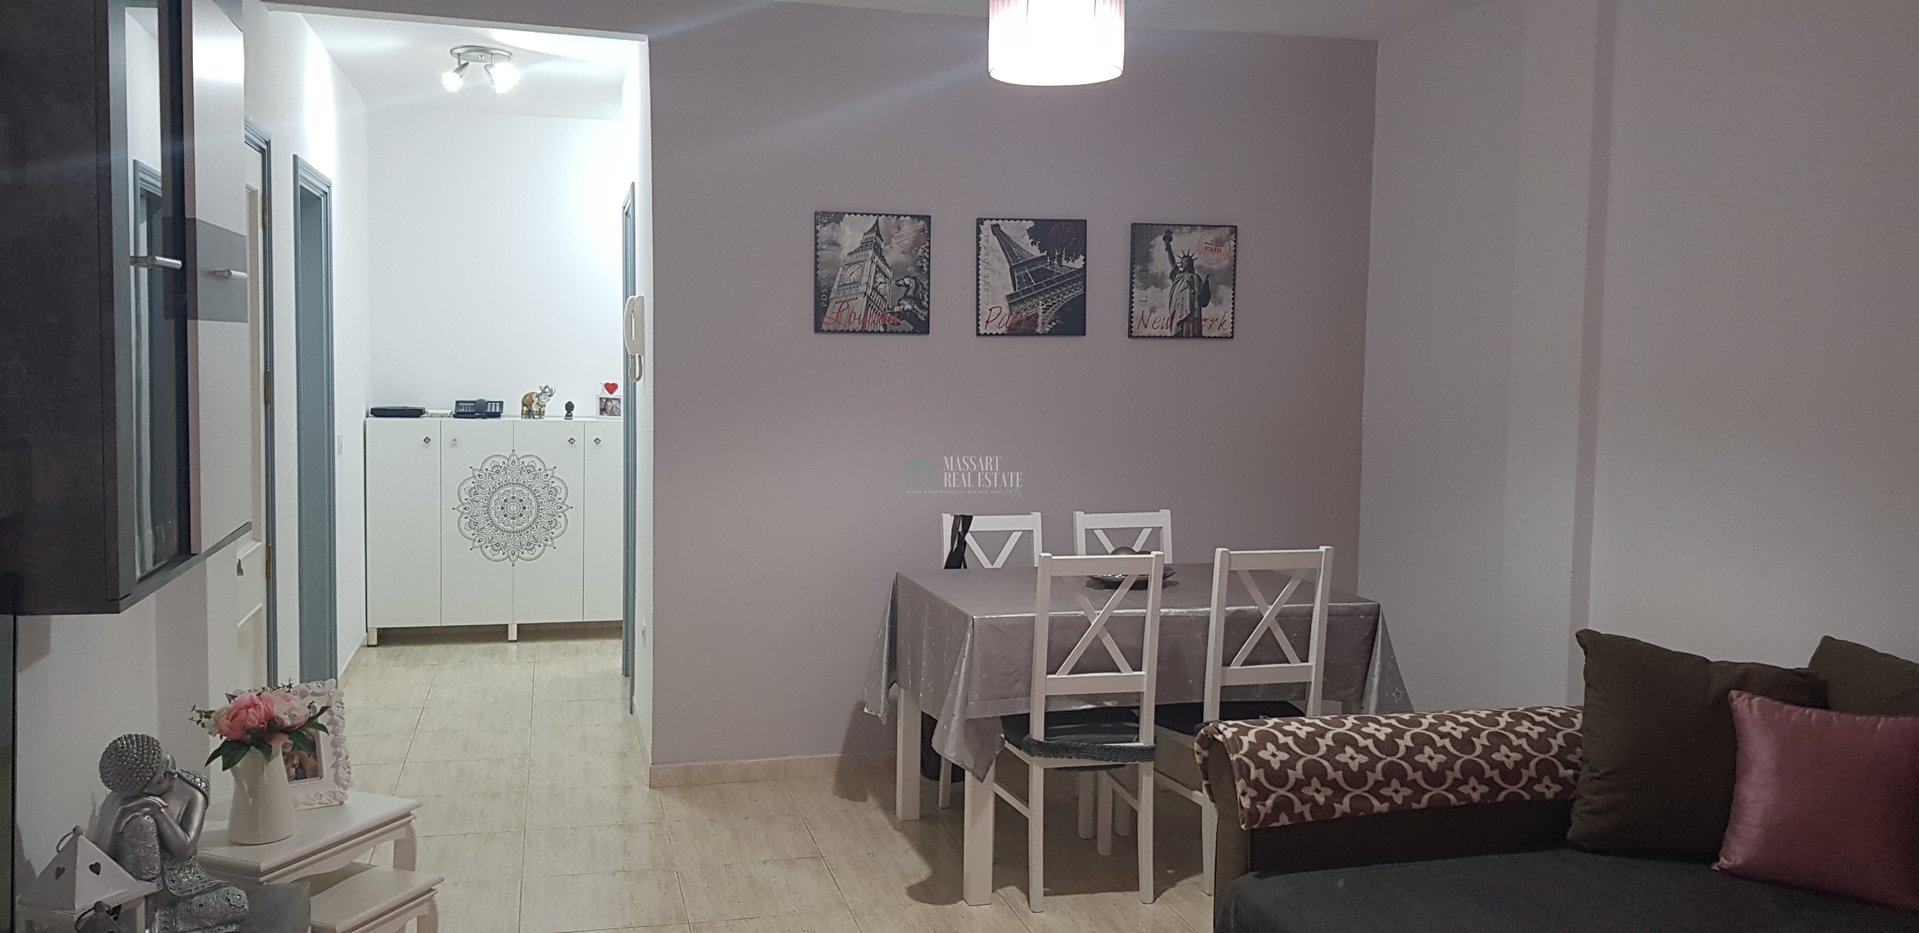 For sale in Las Chafiras (San Miguel de Abona), newly renovated ground floor of 75.20 m2, very spacious and bright.